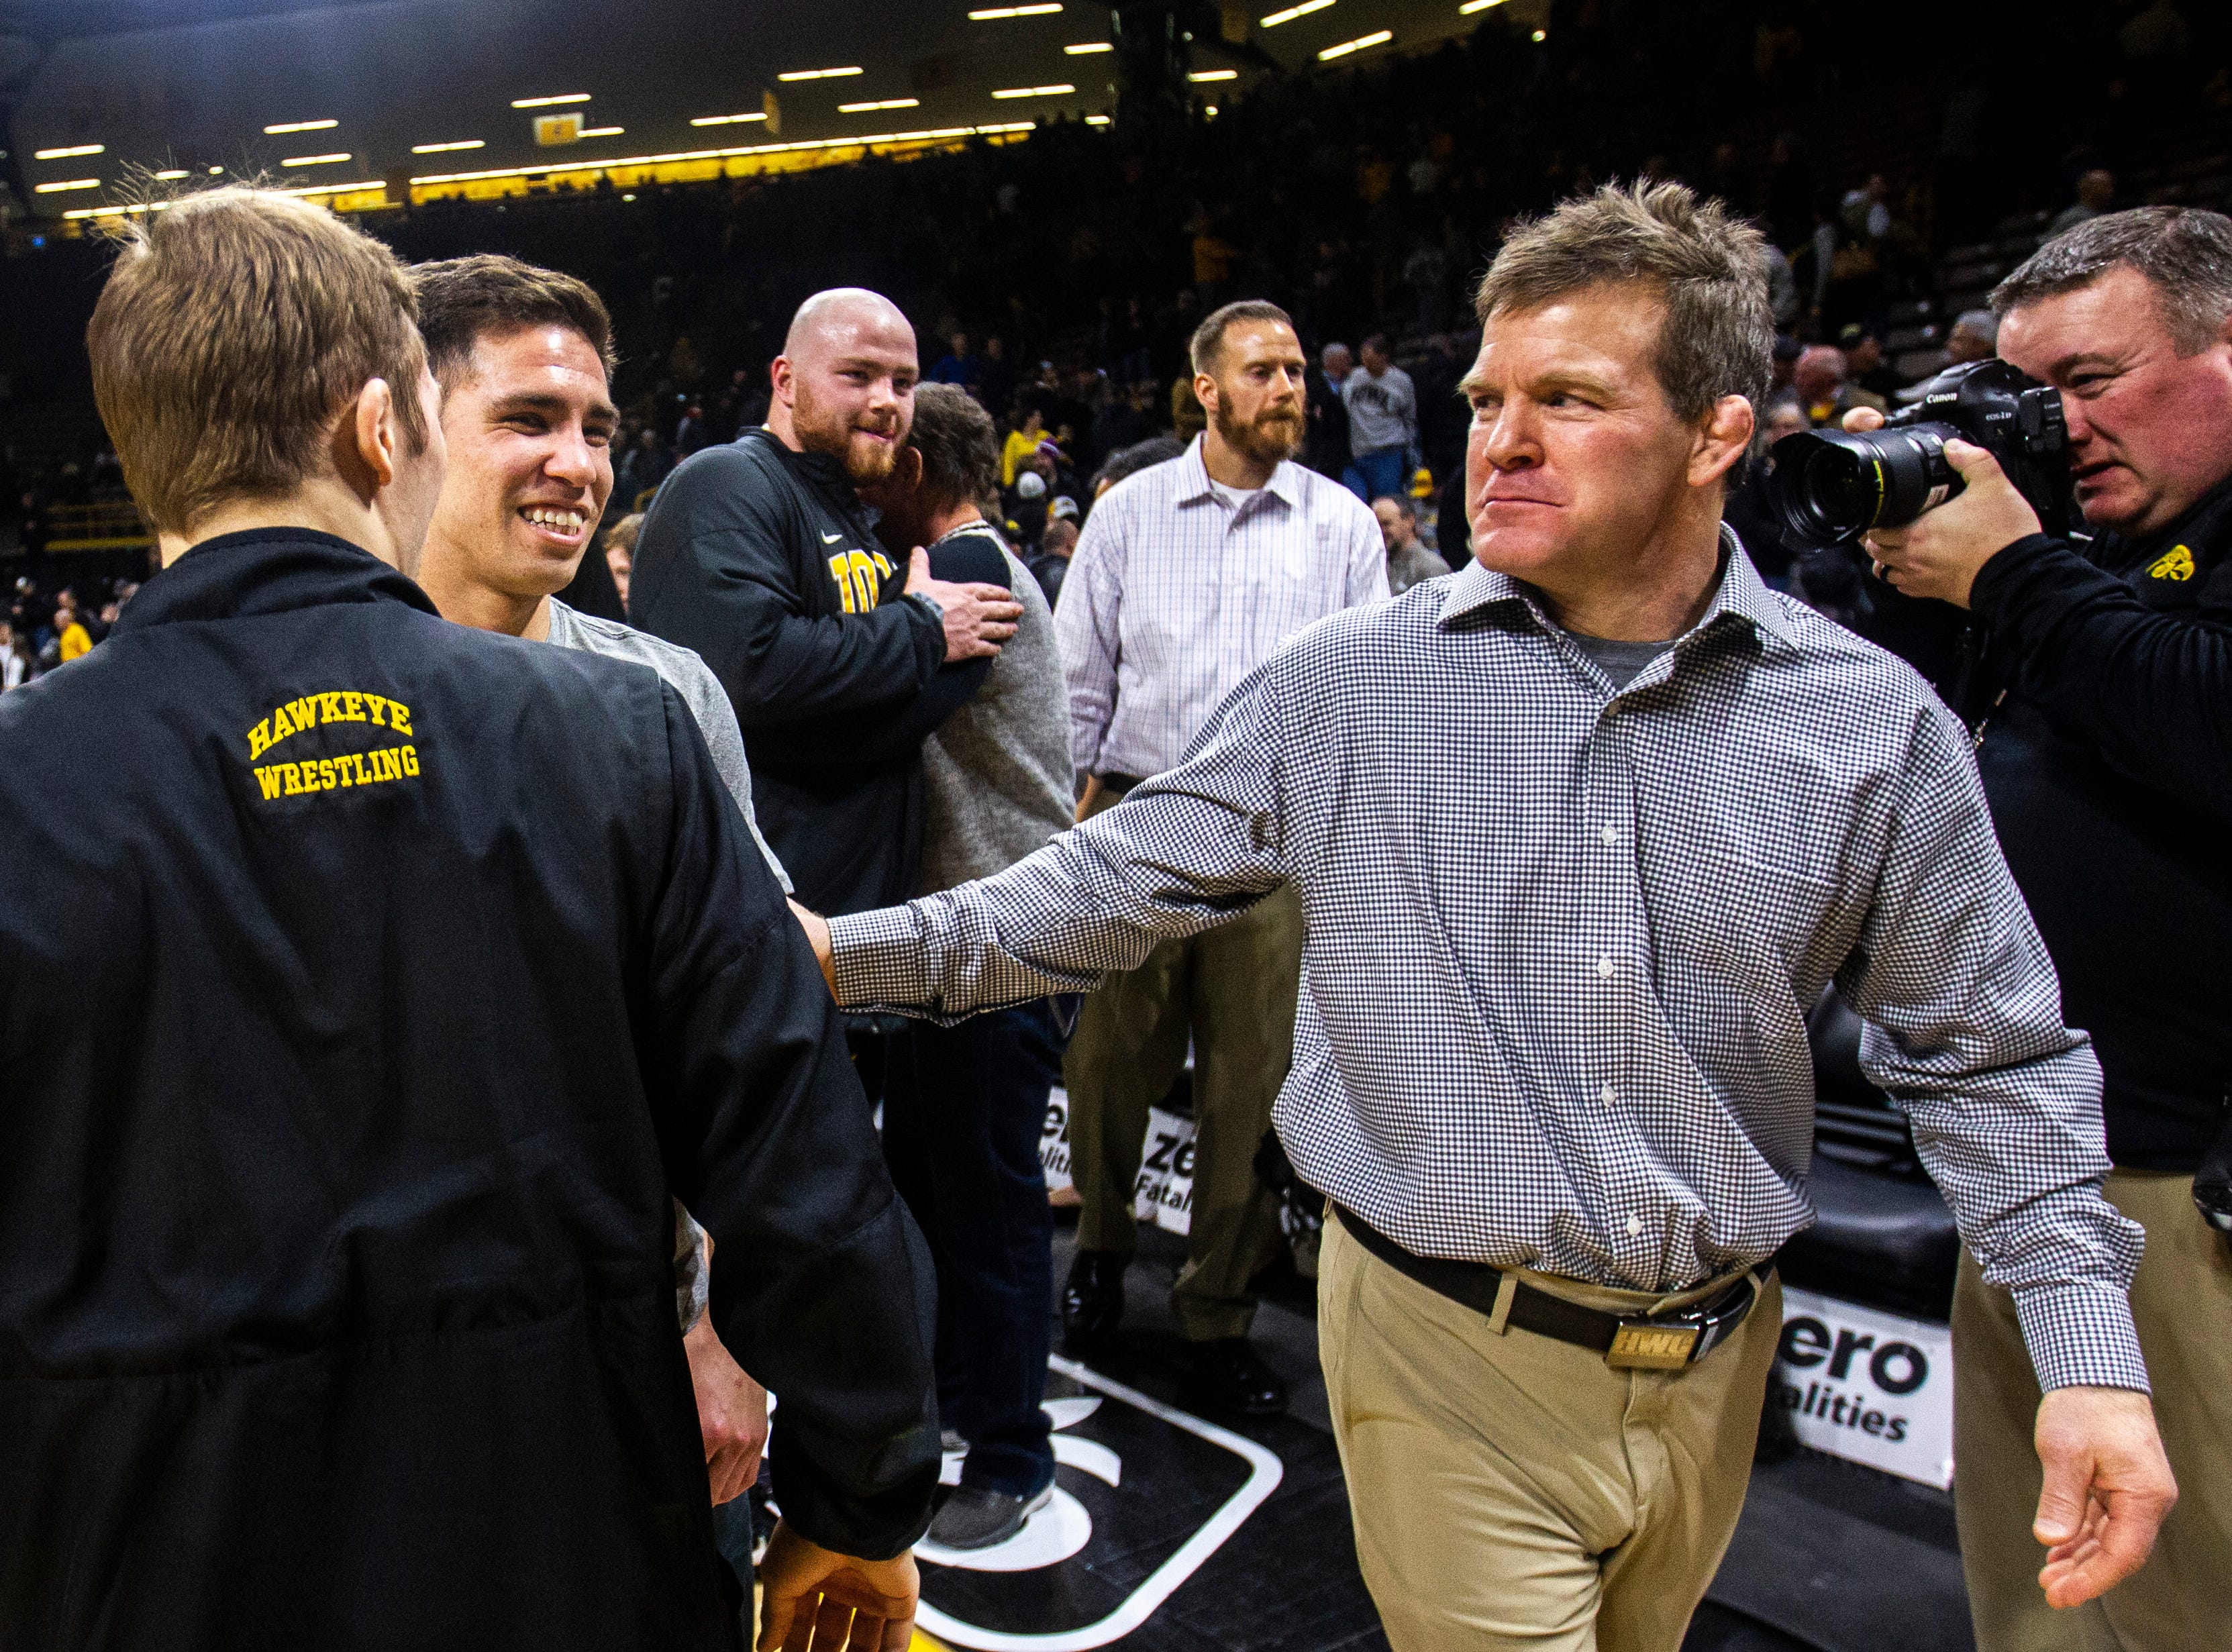 Iowa associate head coach Terry Brands joins Iowa 125-pounders Perez Perez, second from left, and Spencer Lee after a NCAA Big Ten Conference wrestling dual on Friday, Feb. 15, 2019 at Carver-Hawkeye Arena in Iowa City, Iowa.